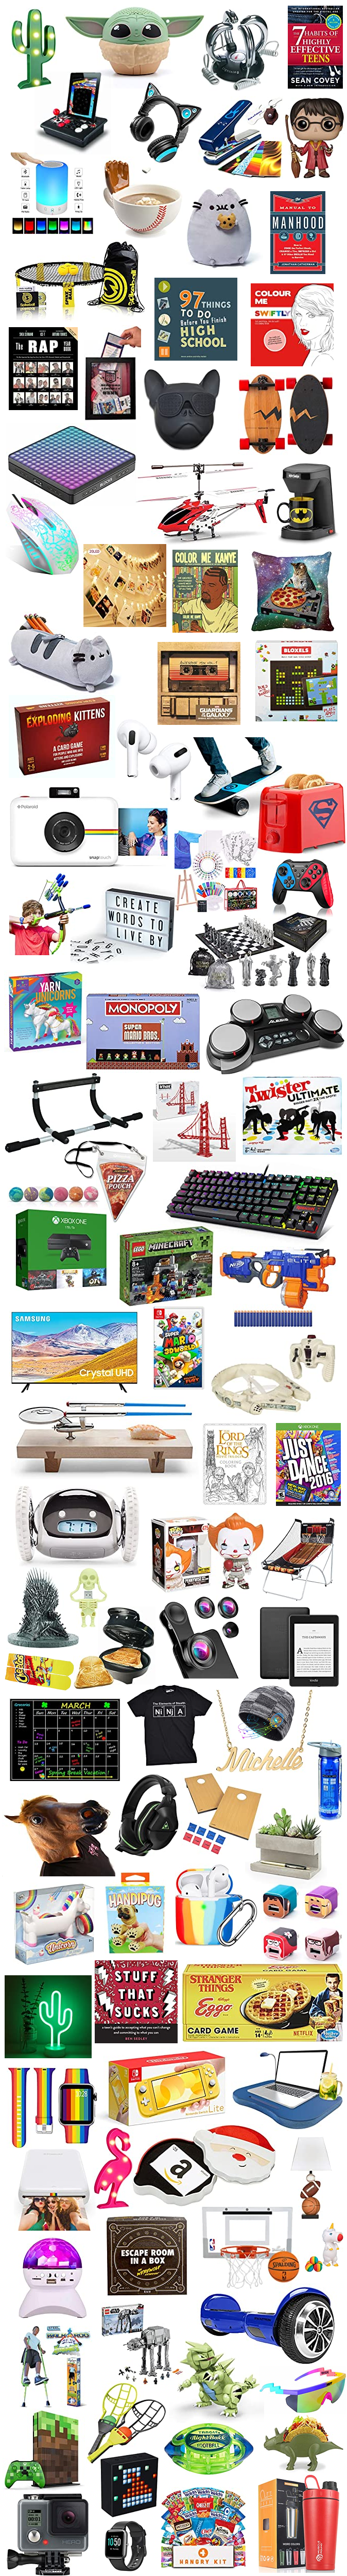 The-Ultimatet-Gift-Guide-For-Teens-This-Christmas-2020